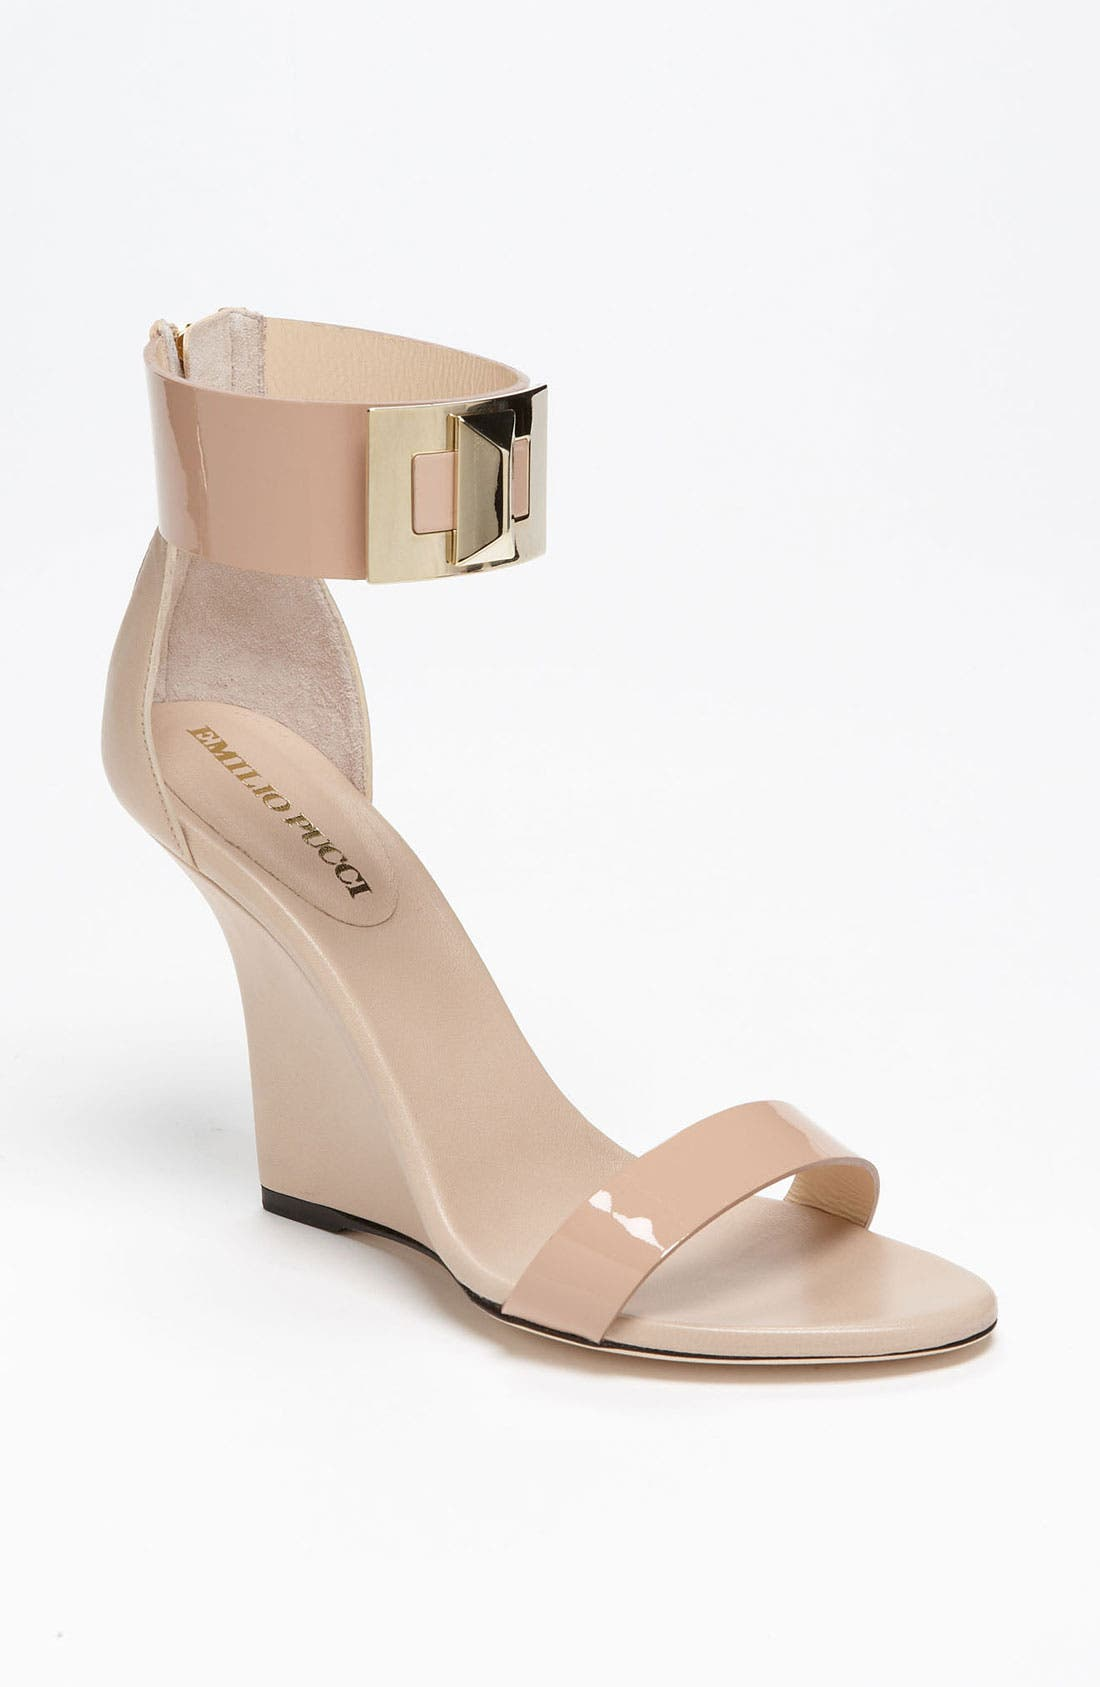 Alternate Image 1 Selected - Emilio Pucci 'Marquise' Wedge Sandal